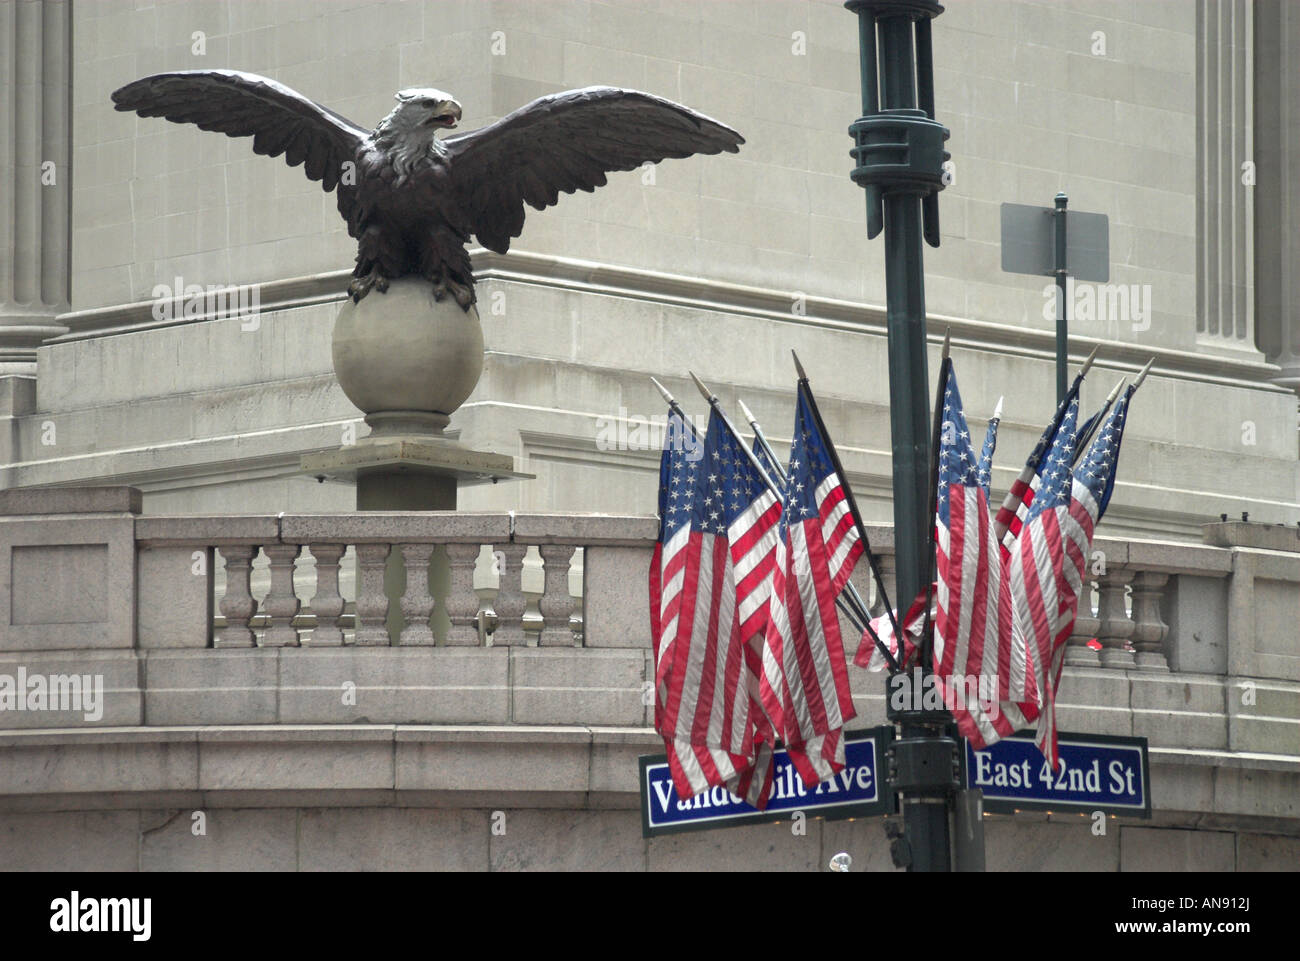 Statue of a Bald Eagle and the Stars and Stripes, Grand Central Station, New York City Stock Photo